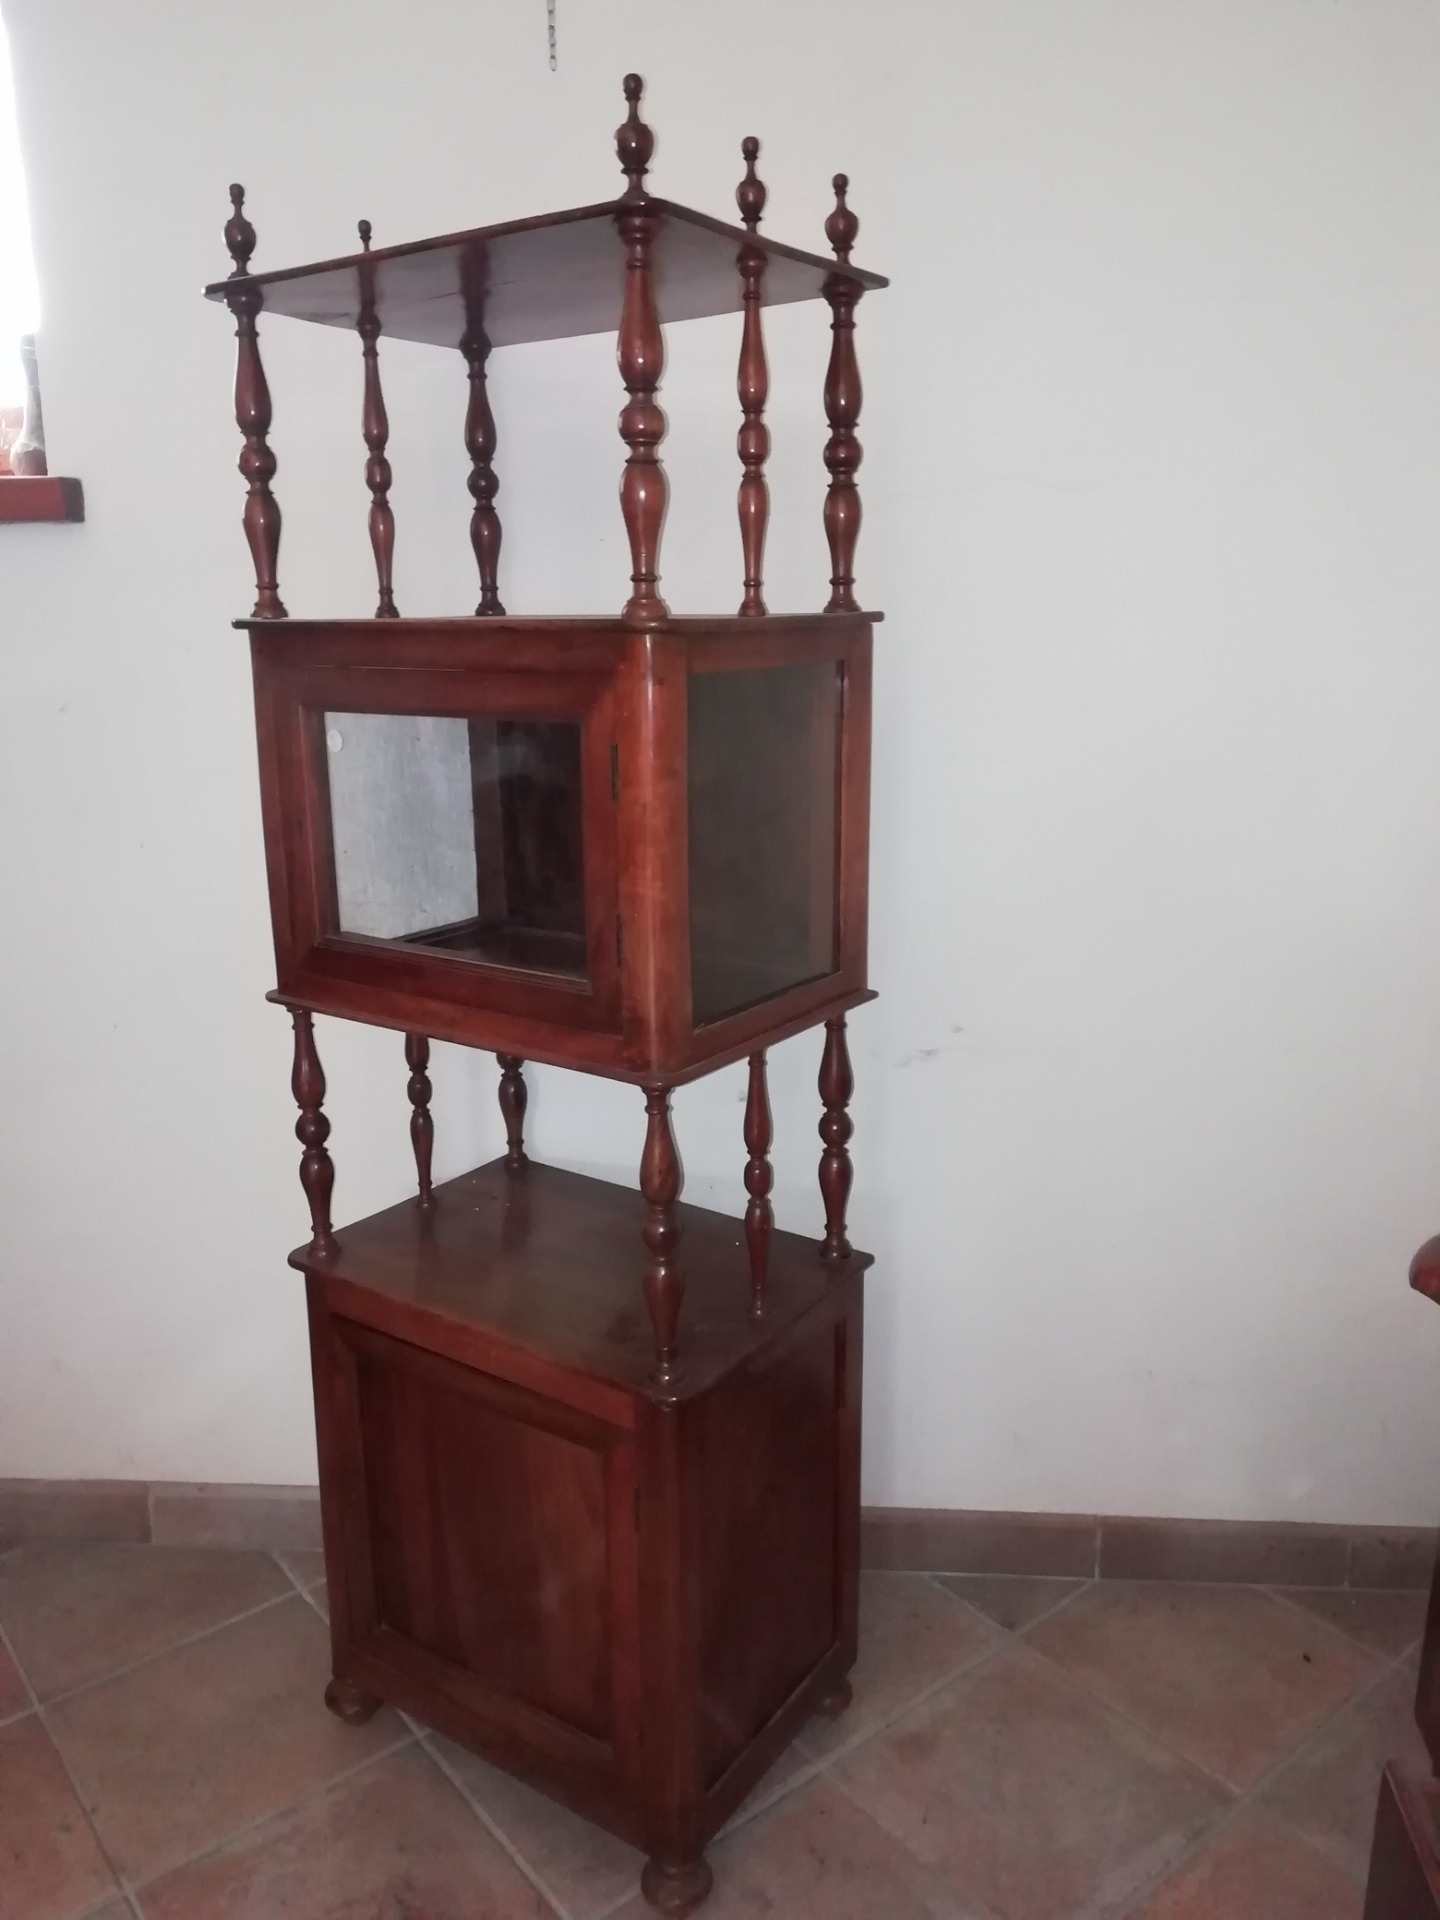 Elegant and particular piece of furniture entirely in walnut door display case in the middle and shelves good condition mid 20th century